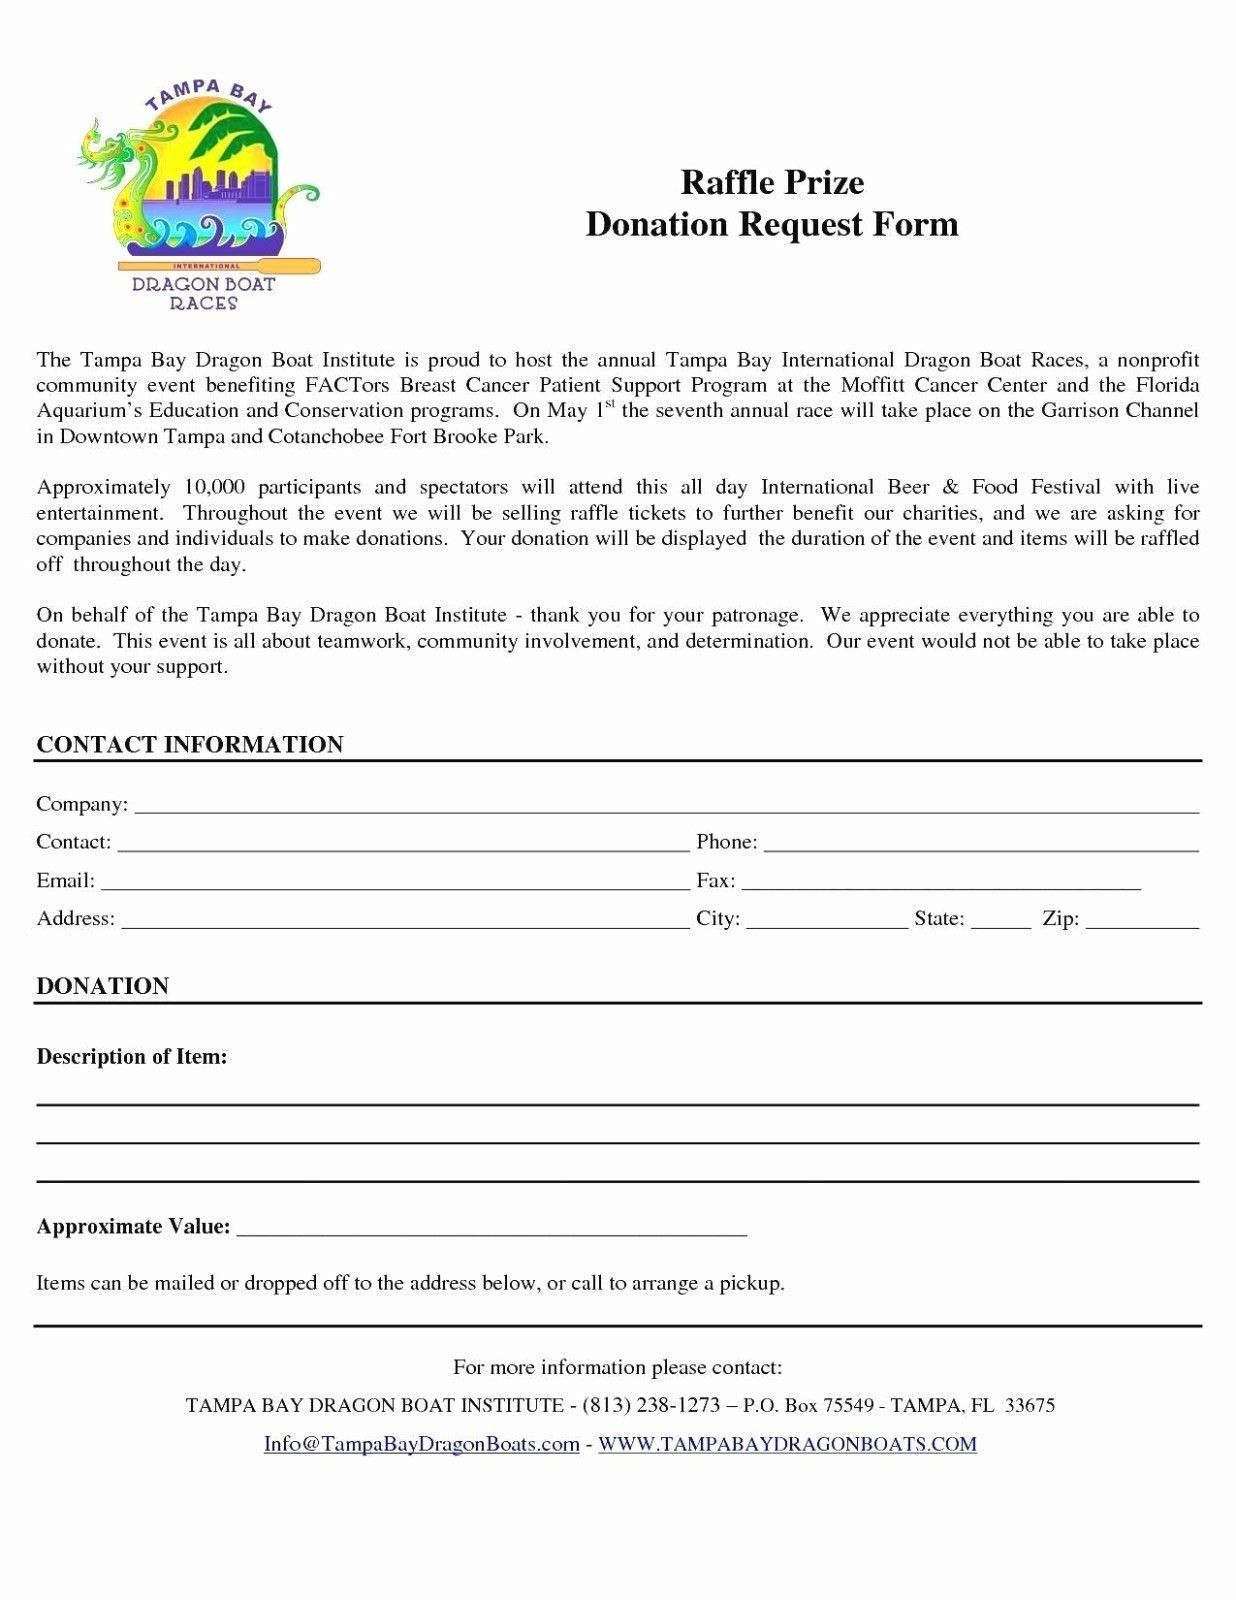 24 free registration form template in 2020 donation cv objective for bank job office assistant resume pdf latest format application